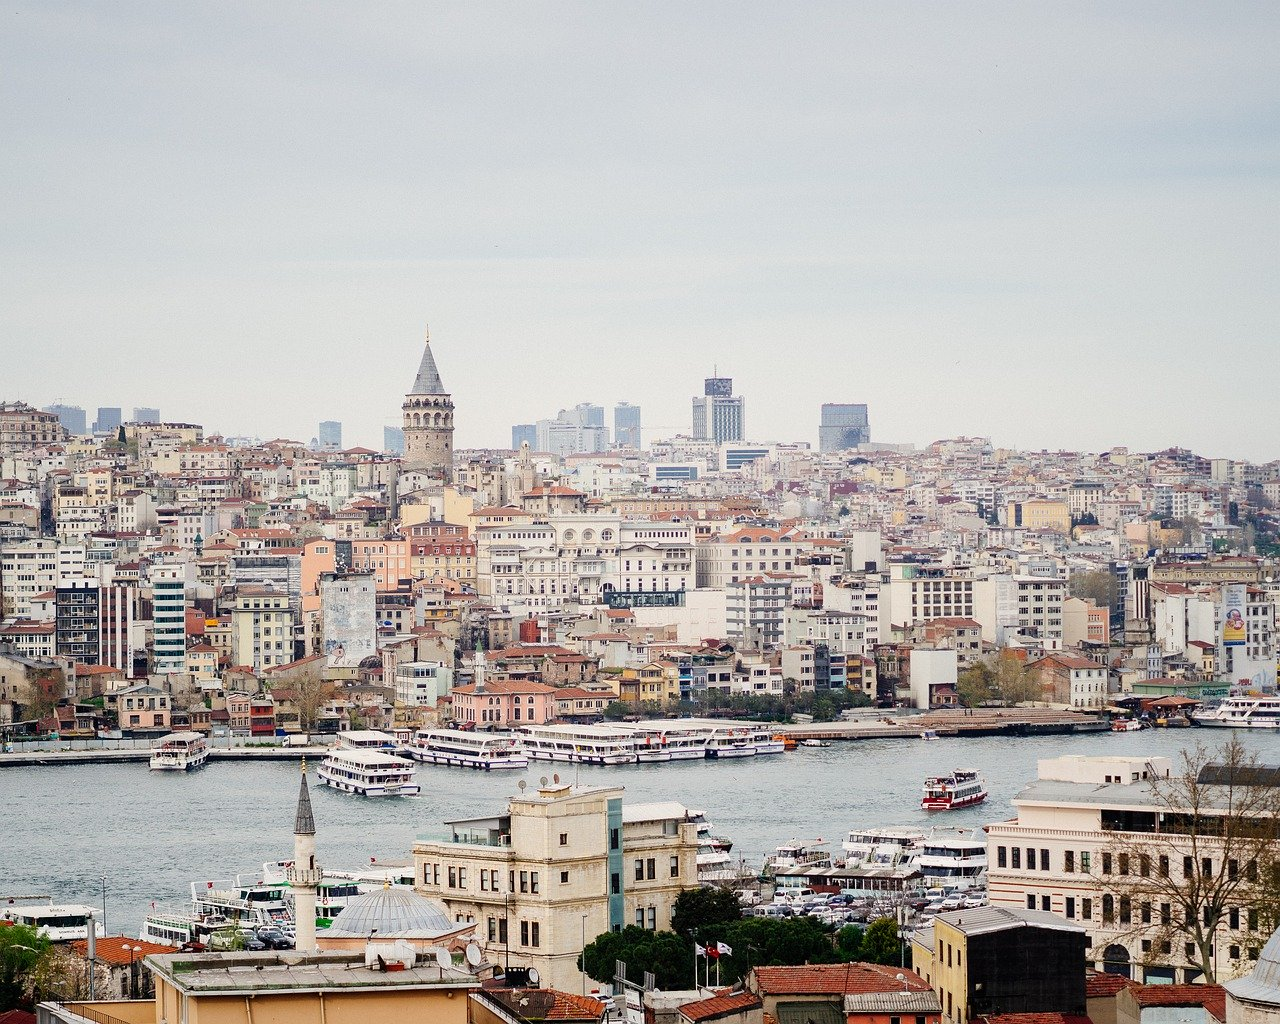 Turkey's Not Just For Christmas: 5 Reasons I'd Love To Visit Istanbul